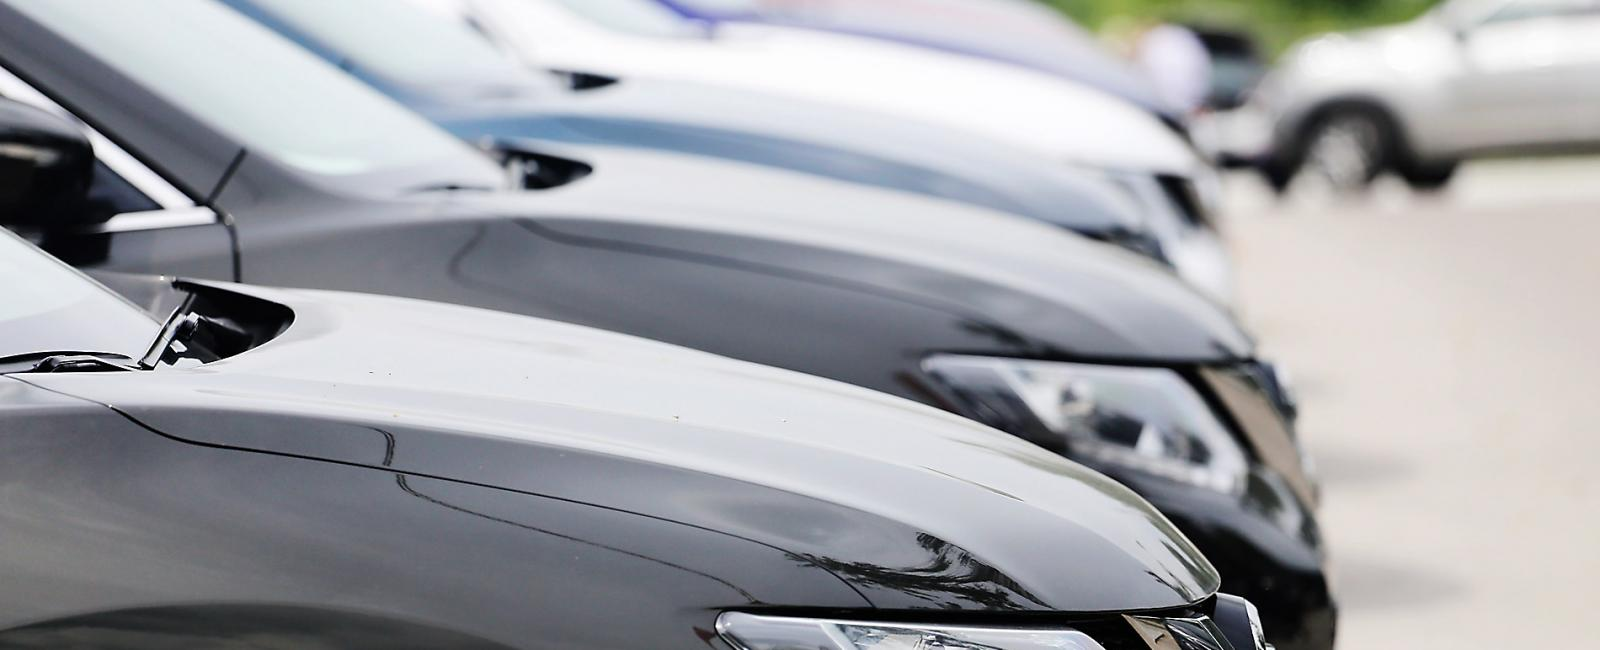 Used Car Inspection Georgetown Tx